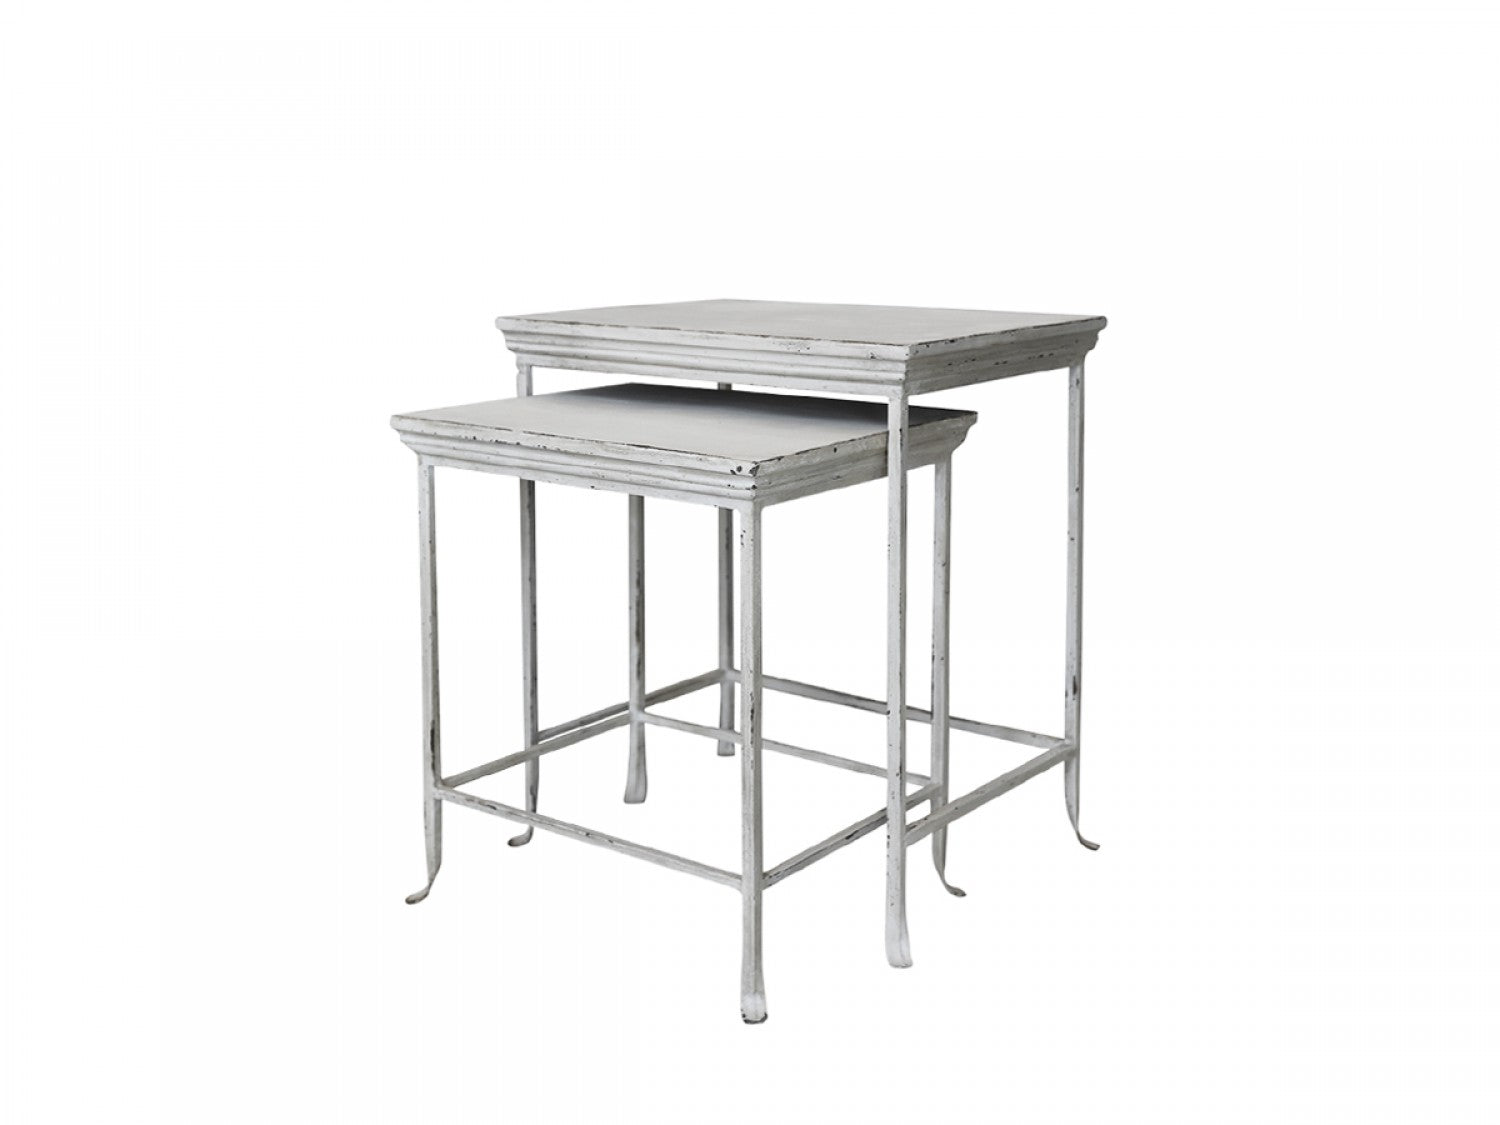 Set of 2 Metal Nesting Tables